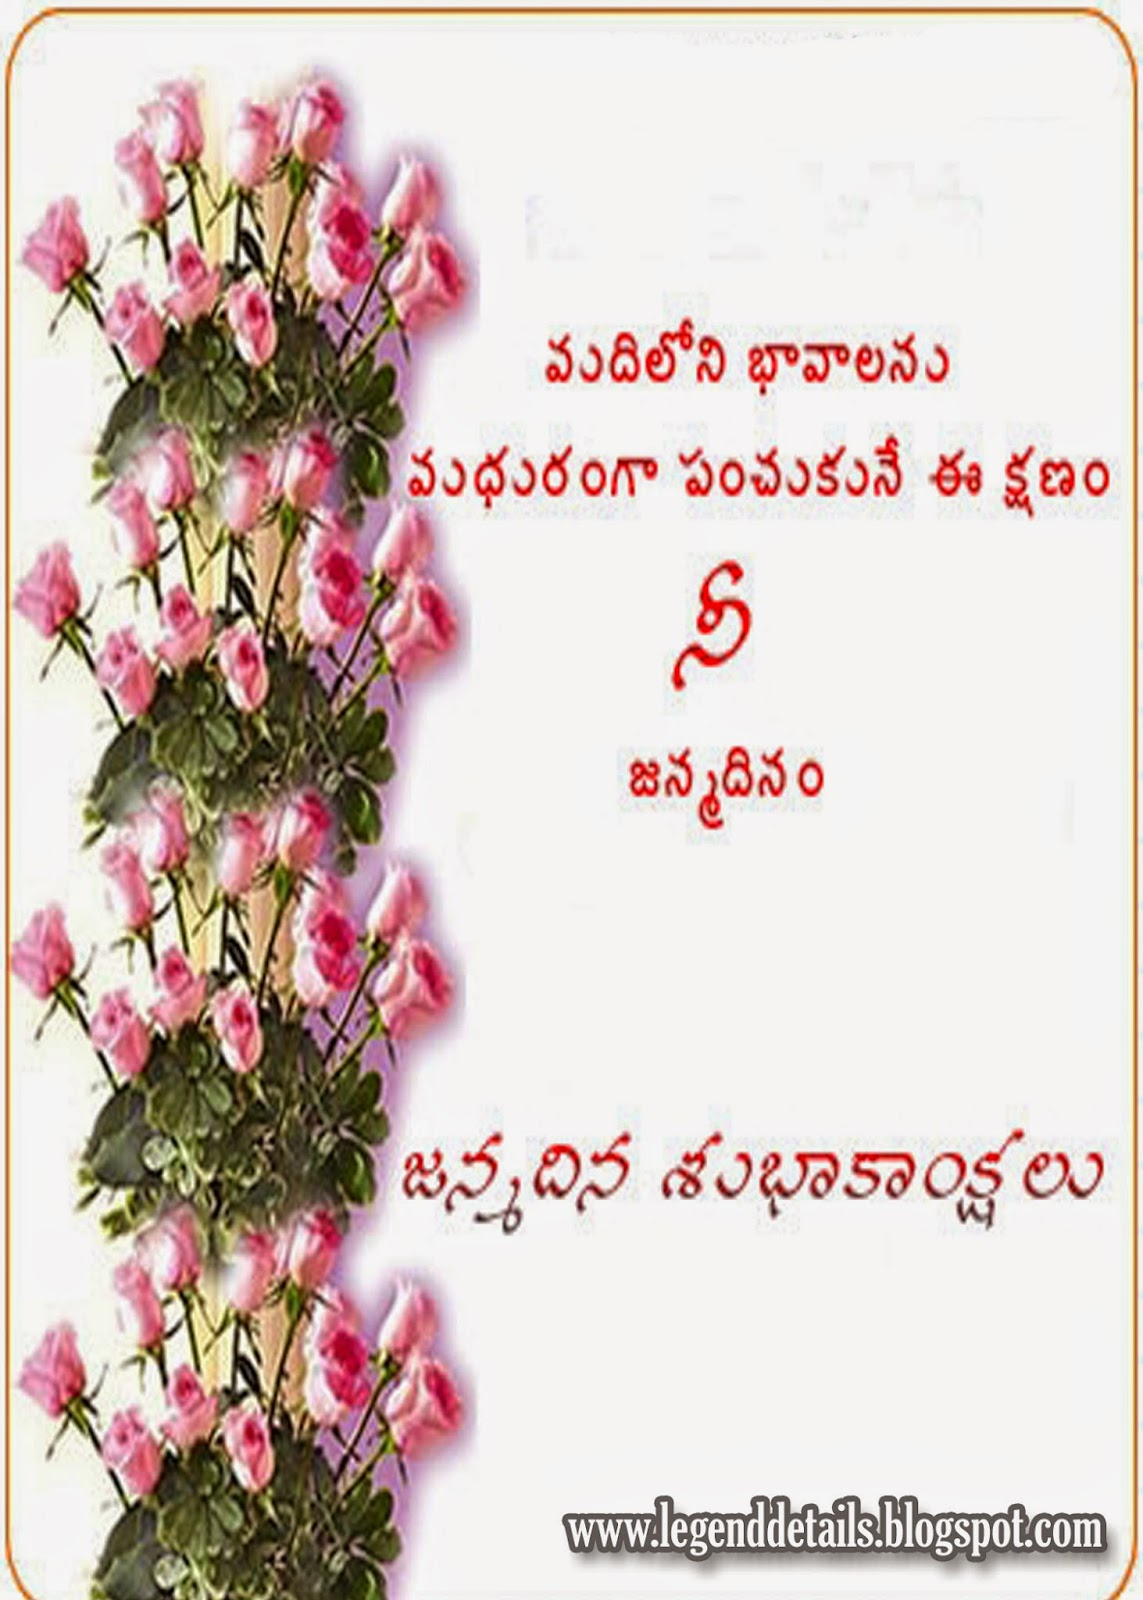 Birth day greetings in telugu free subhakankshalu with images birth day greetings for girl friend or boy friend in telugu kristyandbryce Gallery